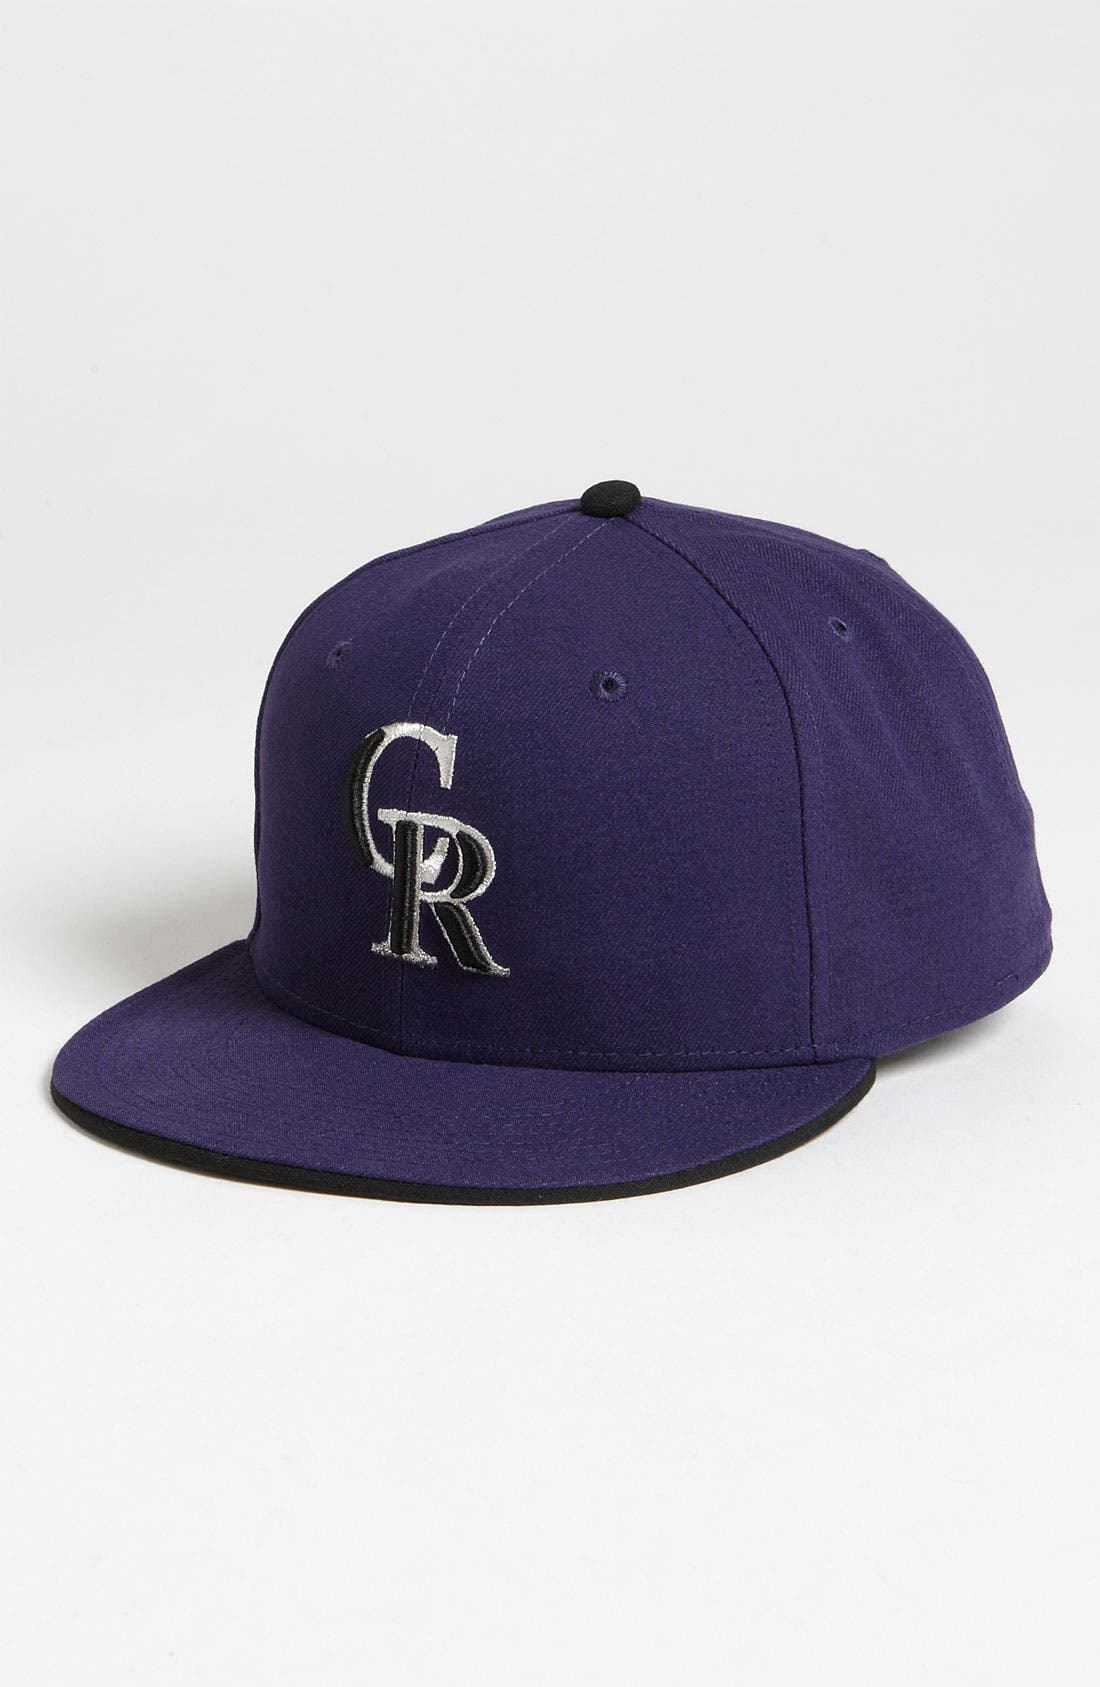 Alternate Image 1 Selected - New Era Cap 'Colorado Rockies' Baseball Cap